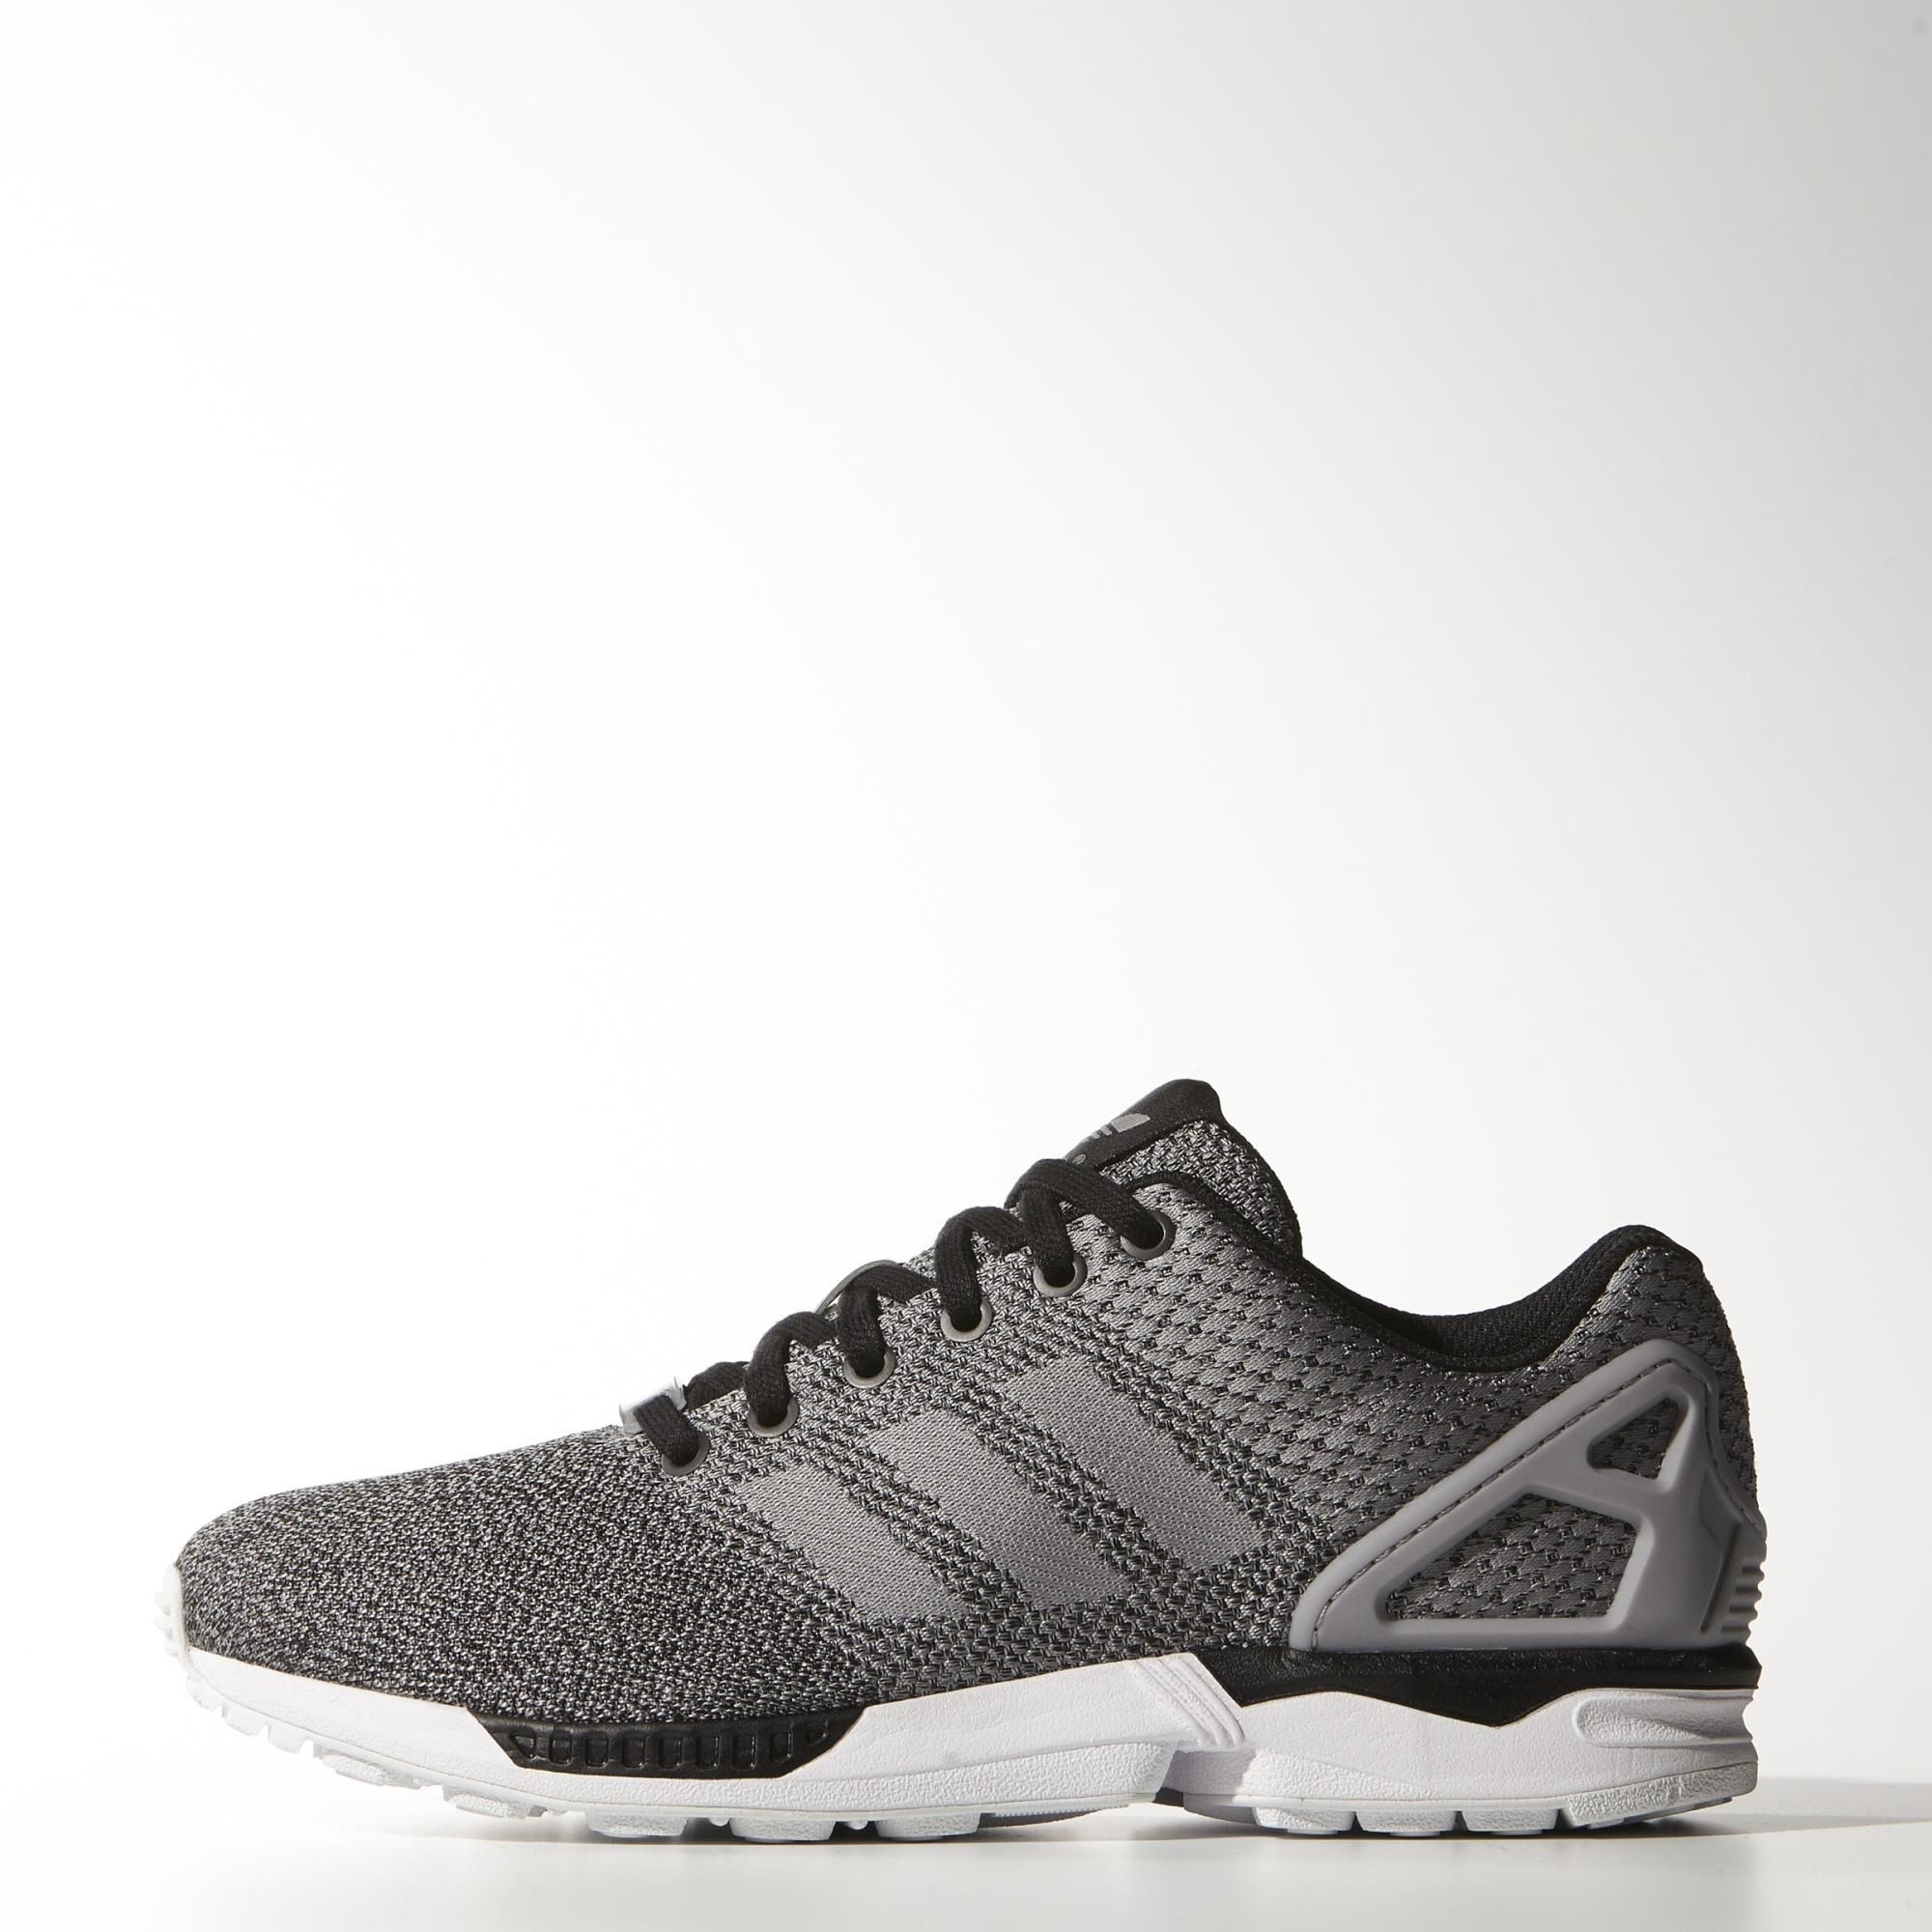 Adidas Zx Flux Shoes Adidas Us Adidas Shoes Zx Flux Adidas Zx Flux Black Adidas Zx Flux Men